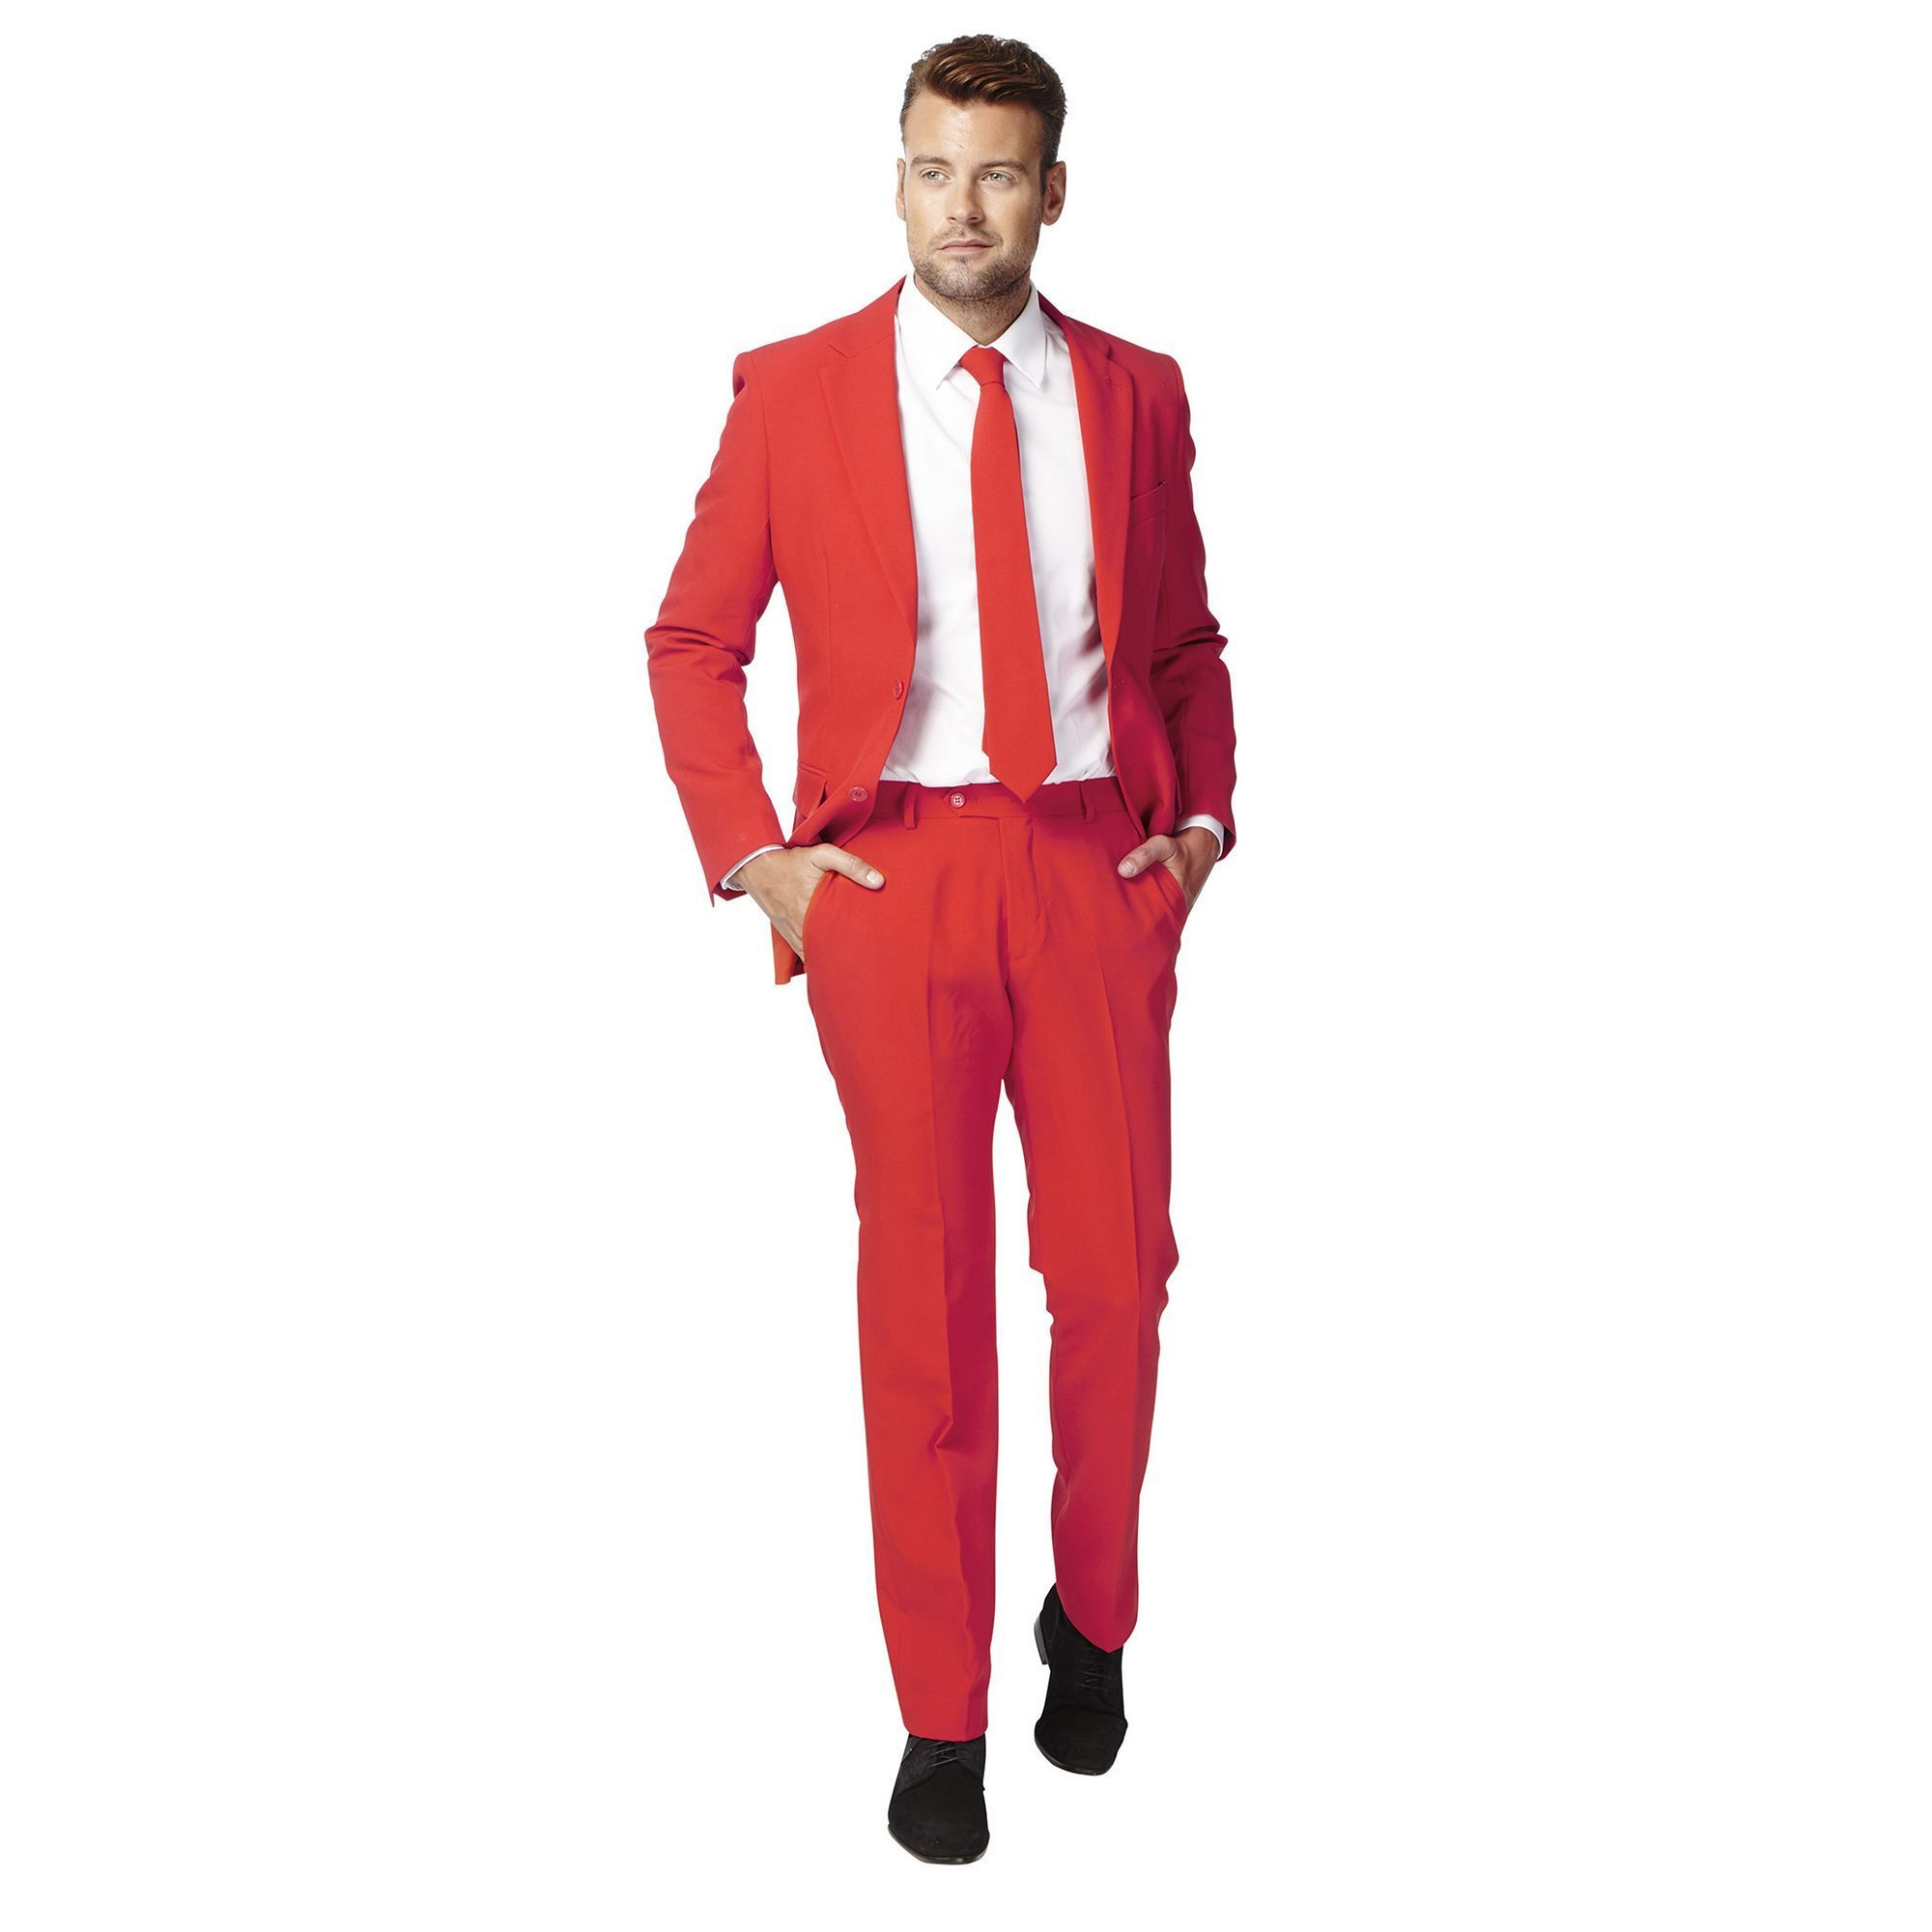 9185d30ba78b Men's OppoSuits Slim-Fit Red Novelty Suit & Tie Set, Size: 50 - regular,  Med Red